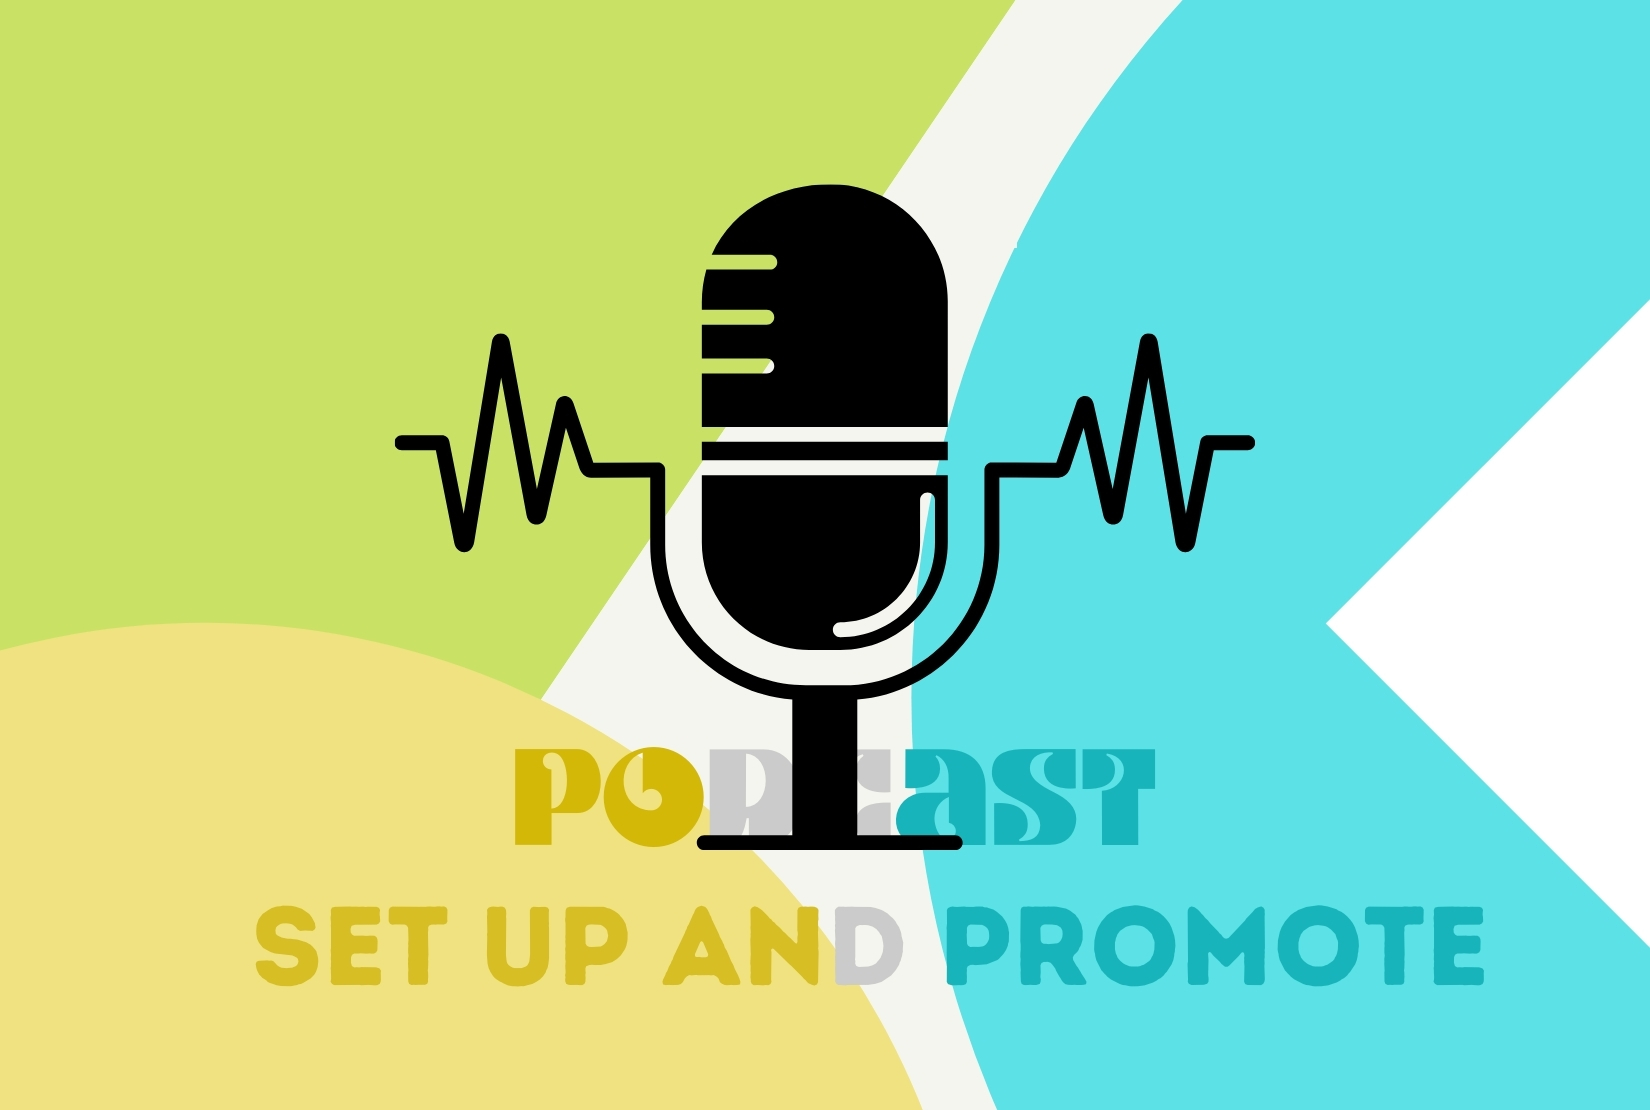 set up podcast and promote on fb with millions of people